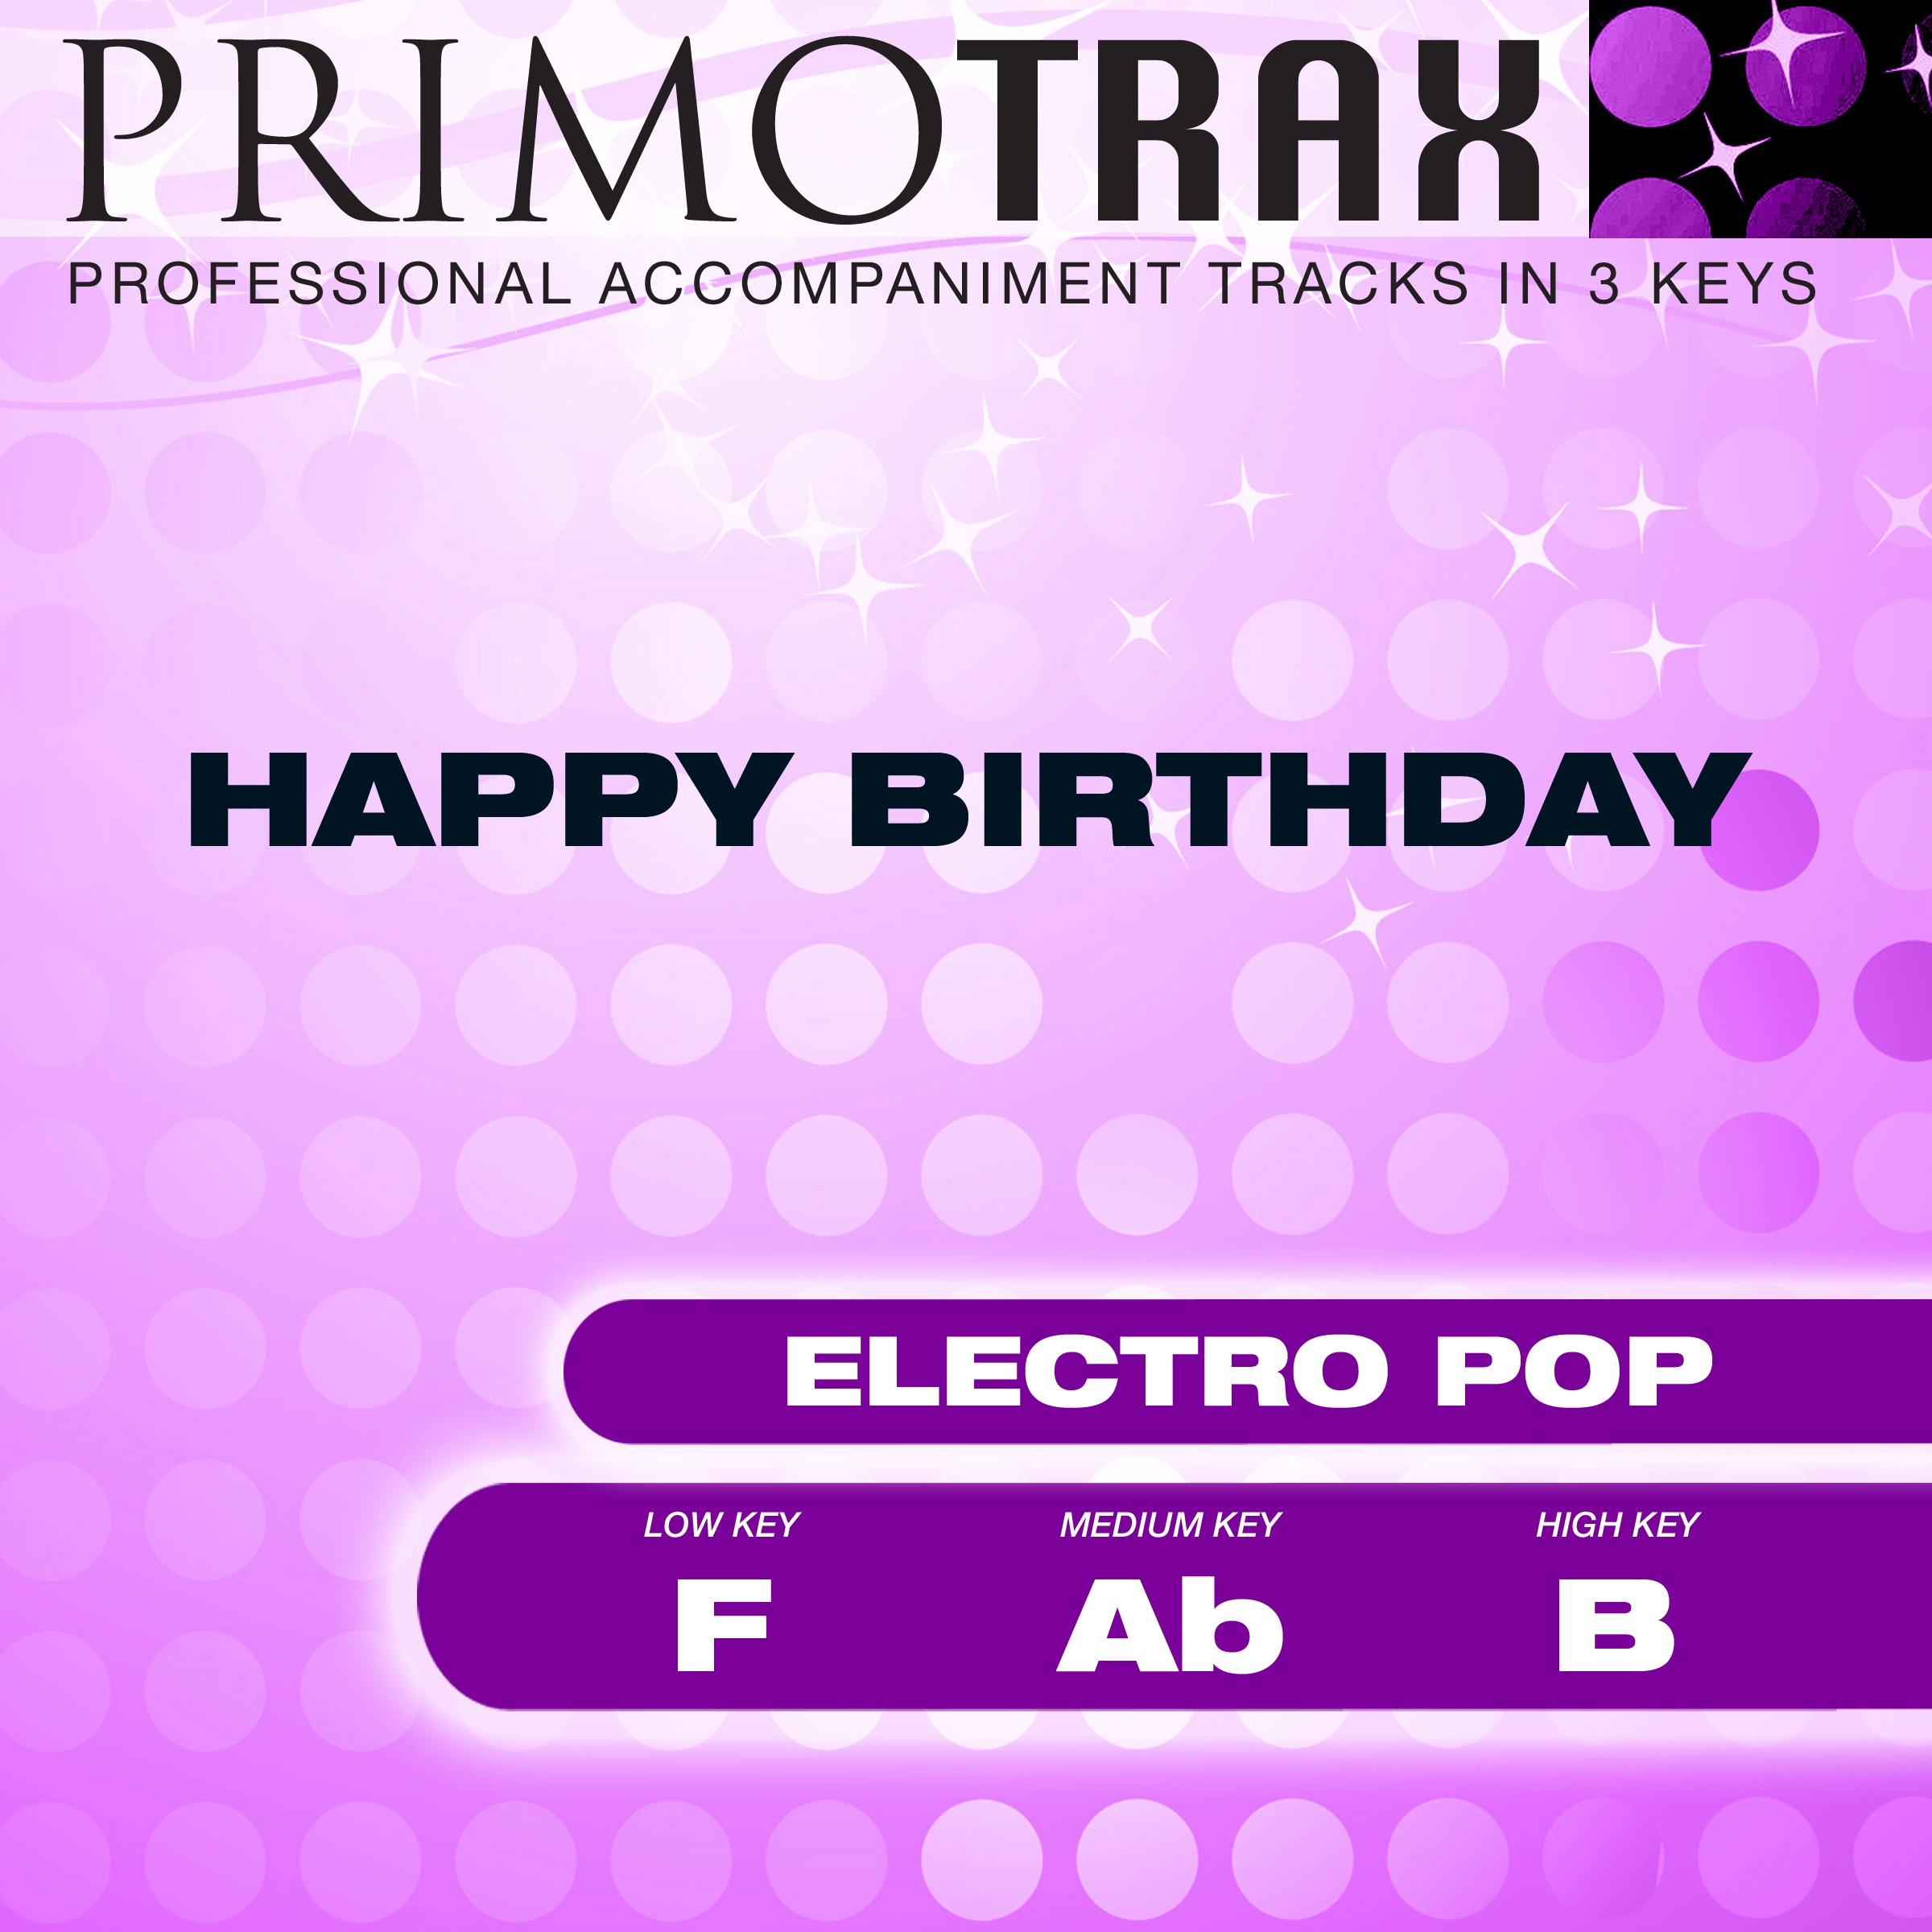 Happy Birthday (Electro Pop) - Pop Primotrax - Performance Tracks - EP